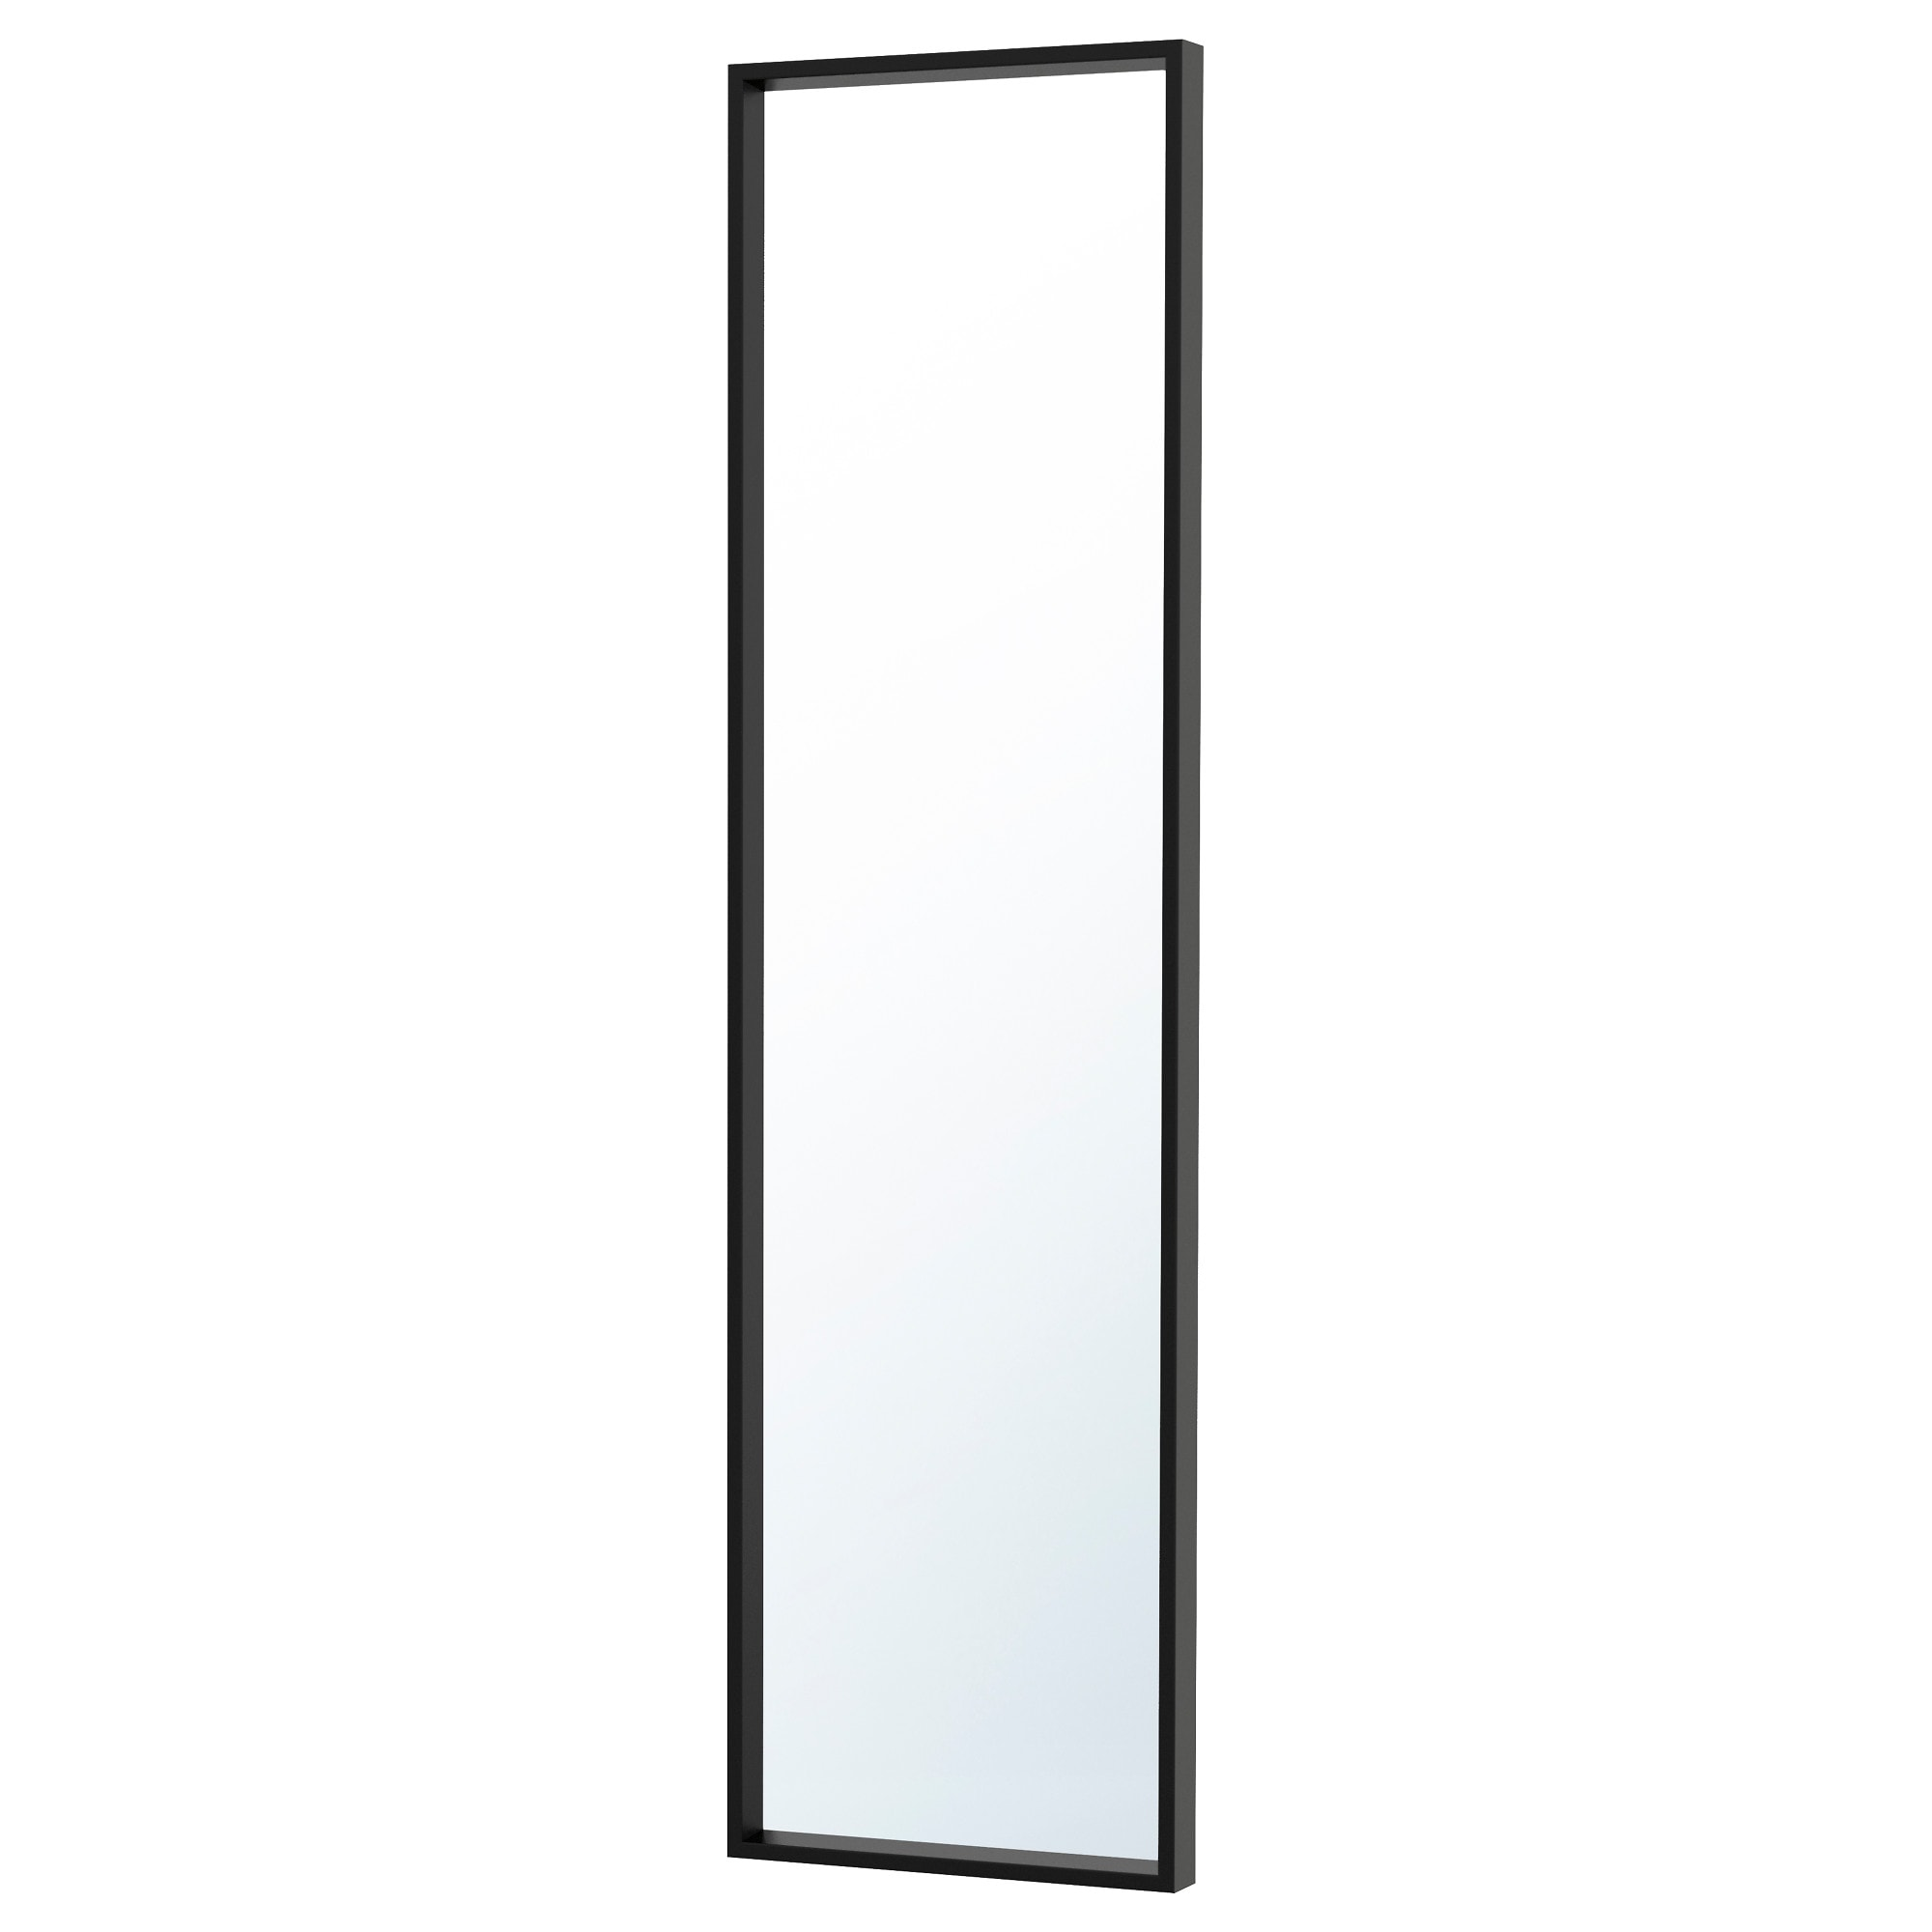 Miroir fer forge ikea hoze home for Miroir fer forge